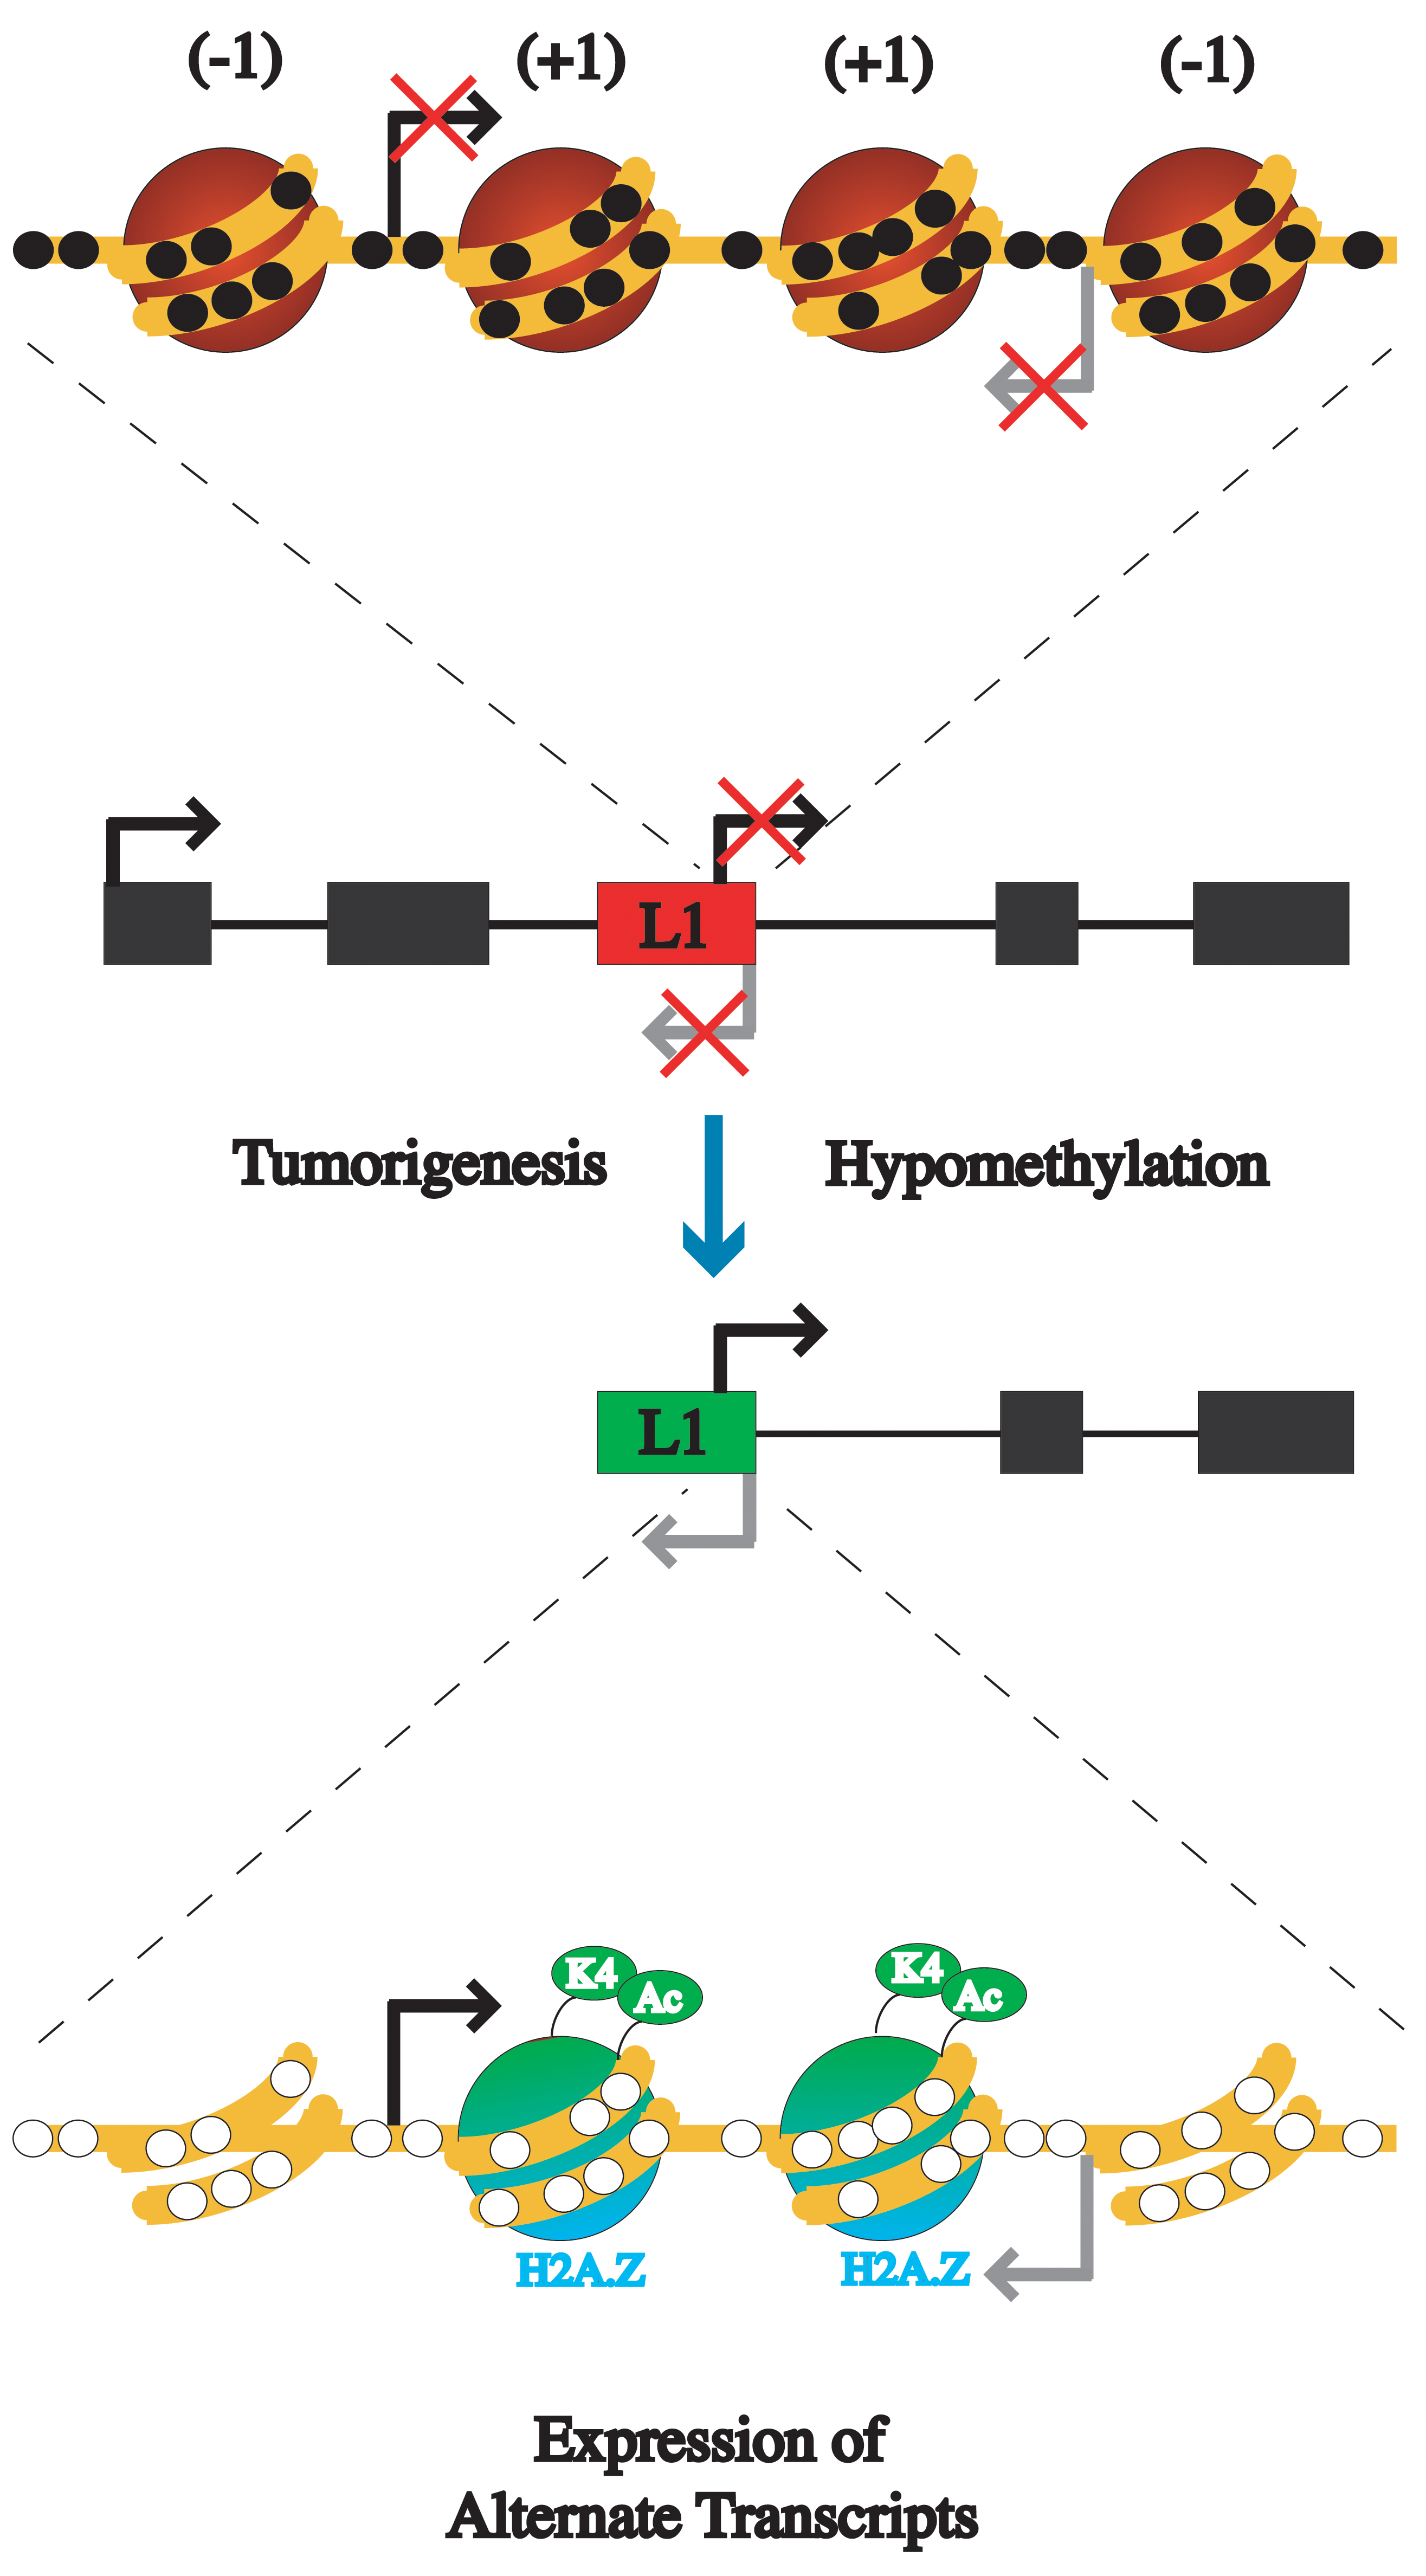 Model of the epigenetic alterations that occur between inactive L1s and active L1s during tumorigenesis.